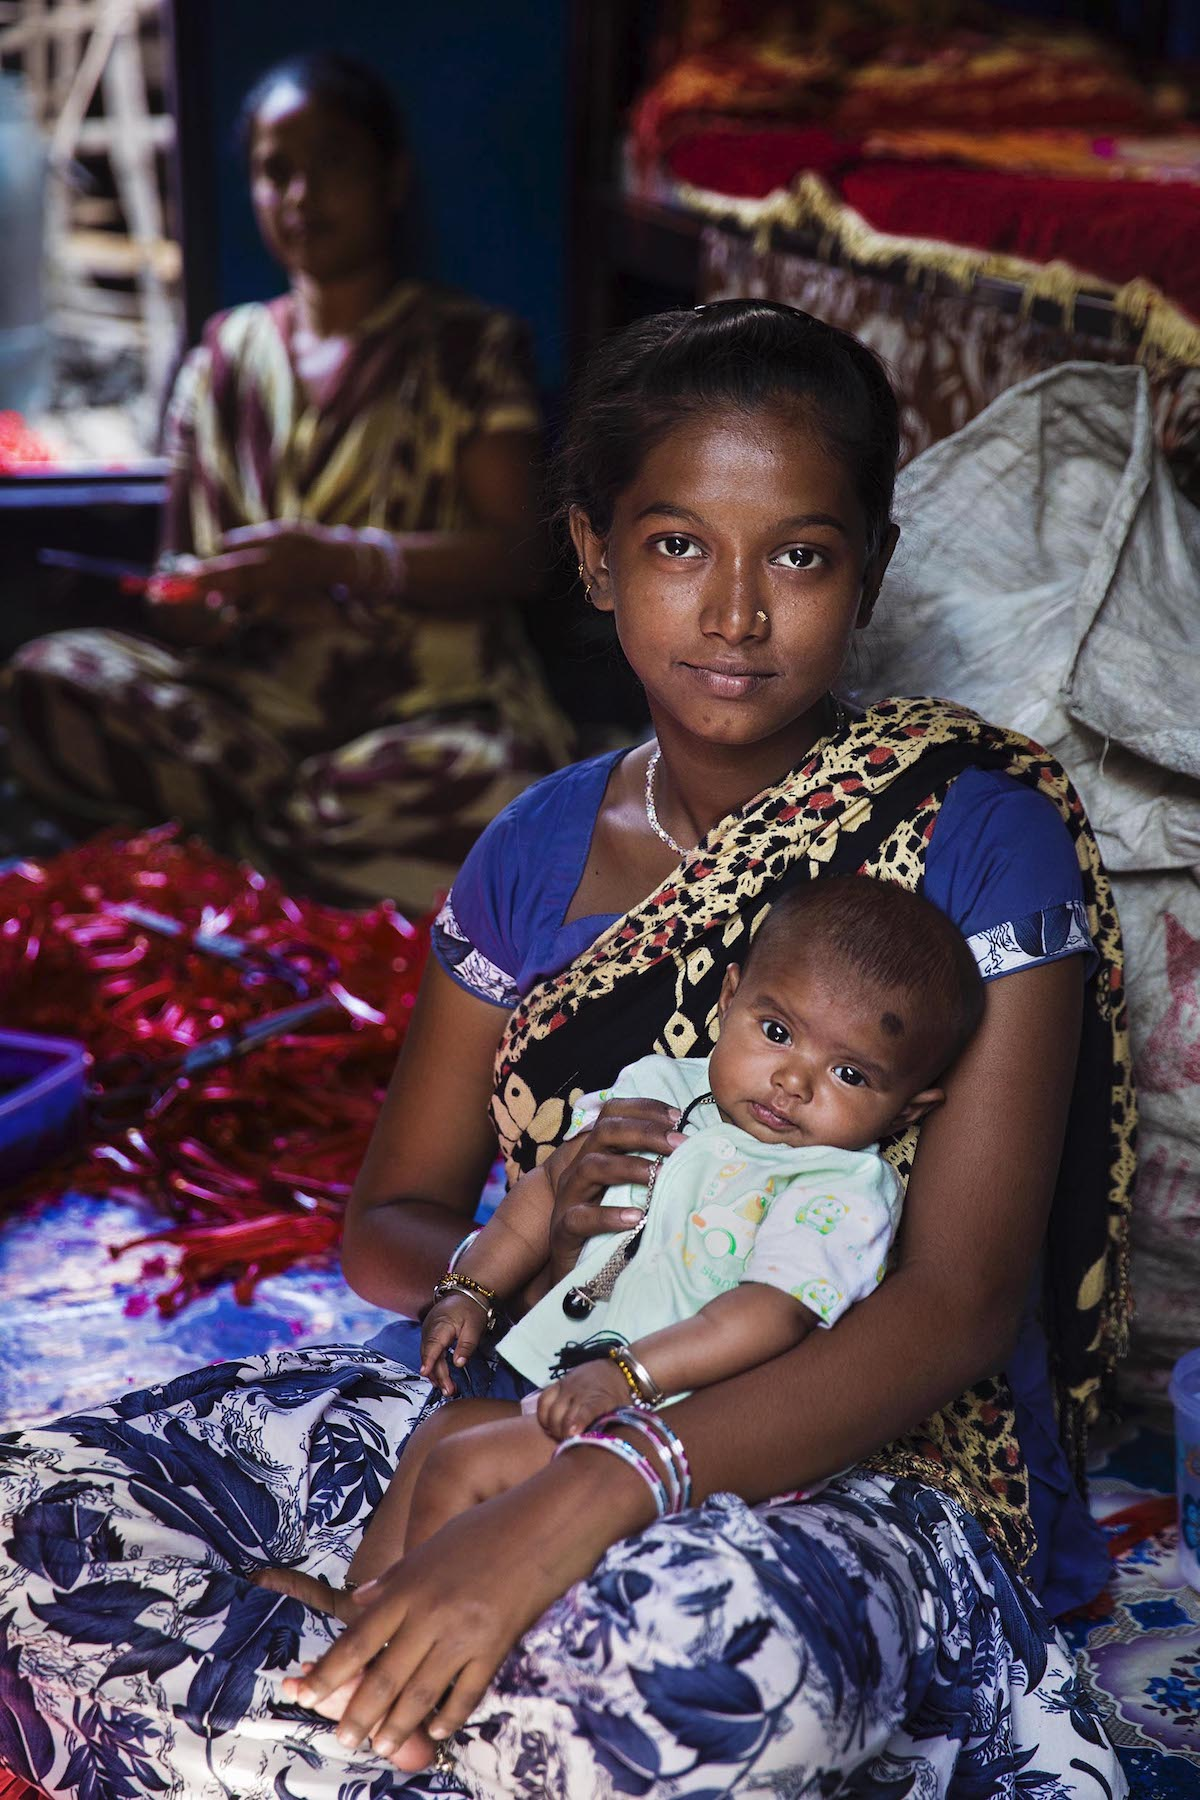 Bangladeshi woman and her daughter in Kolkata